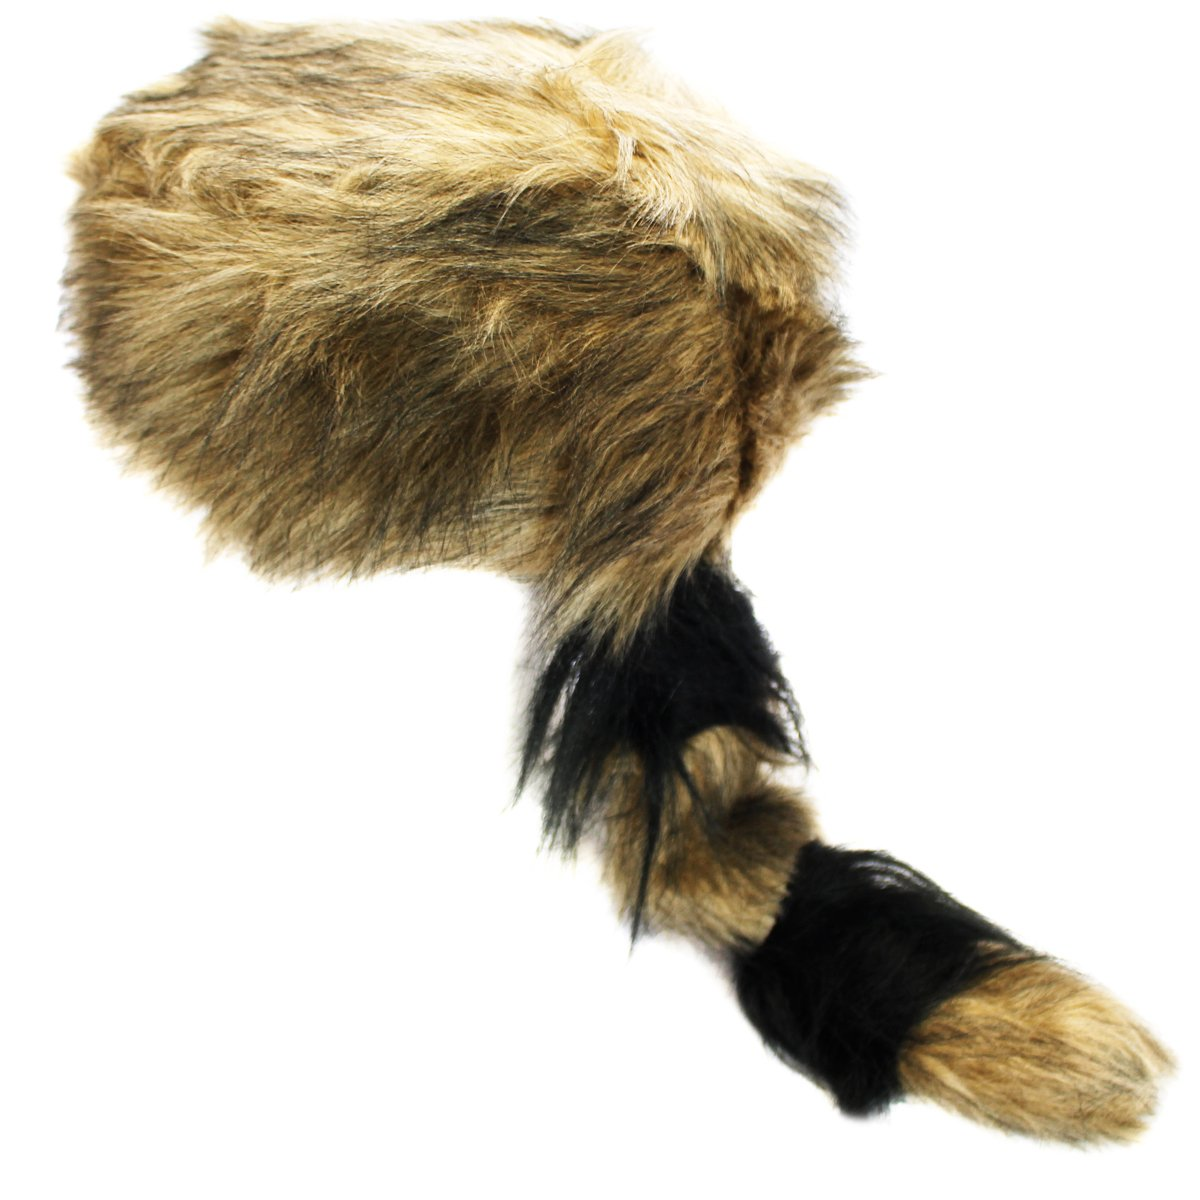 8231fbc3c24 Amazon.com  Coonskin Cap - Daniel Boone Hat Raccoon Tail Hats Novelty Hat  by Funny Party Hats  Clothing